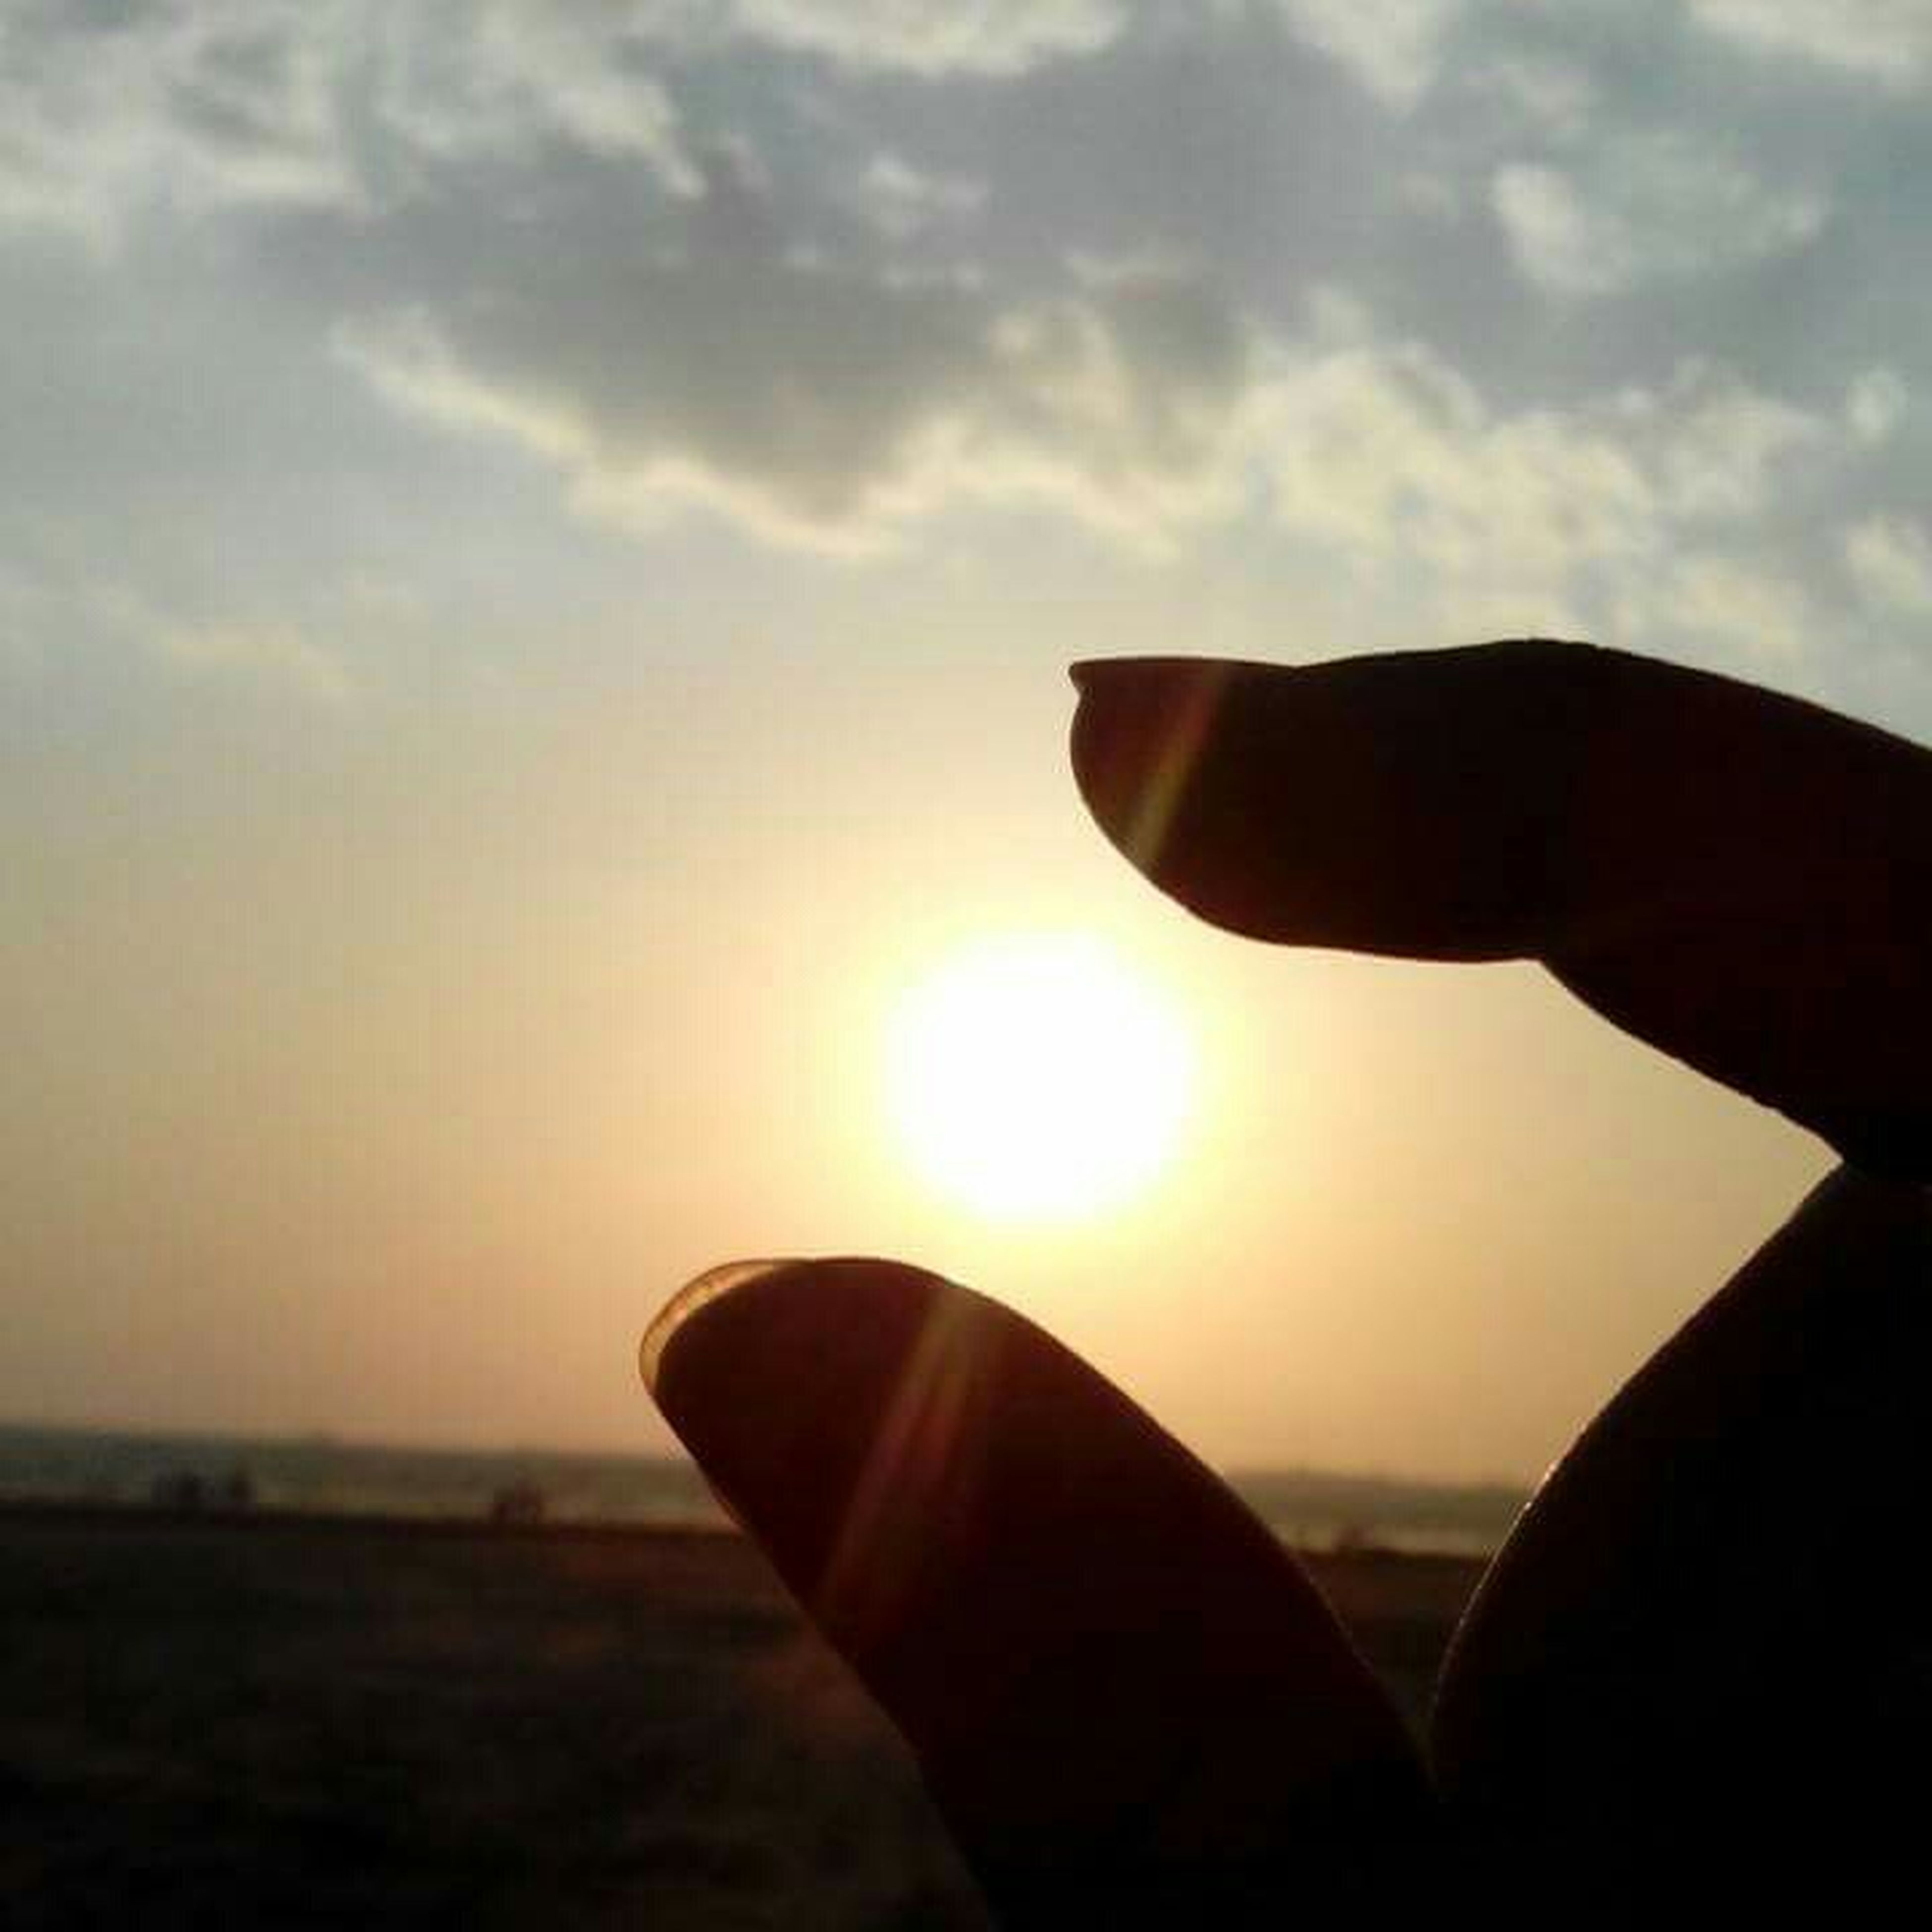 sunset, person, sky, sun, part of, personal perspective, cropped, unrecognizable person, human finger, sunlight, close-up, focus on foreground, silhouette, orange color, cloud - sky, lens flare, nature